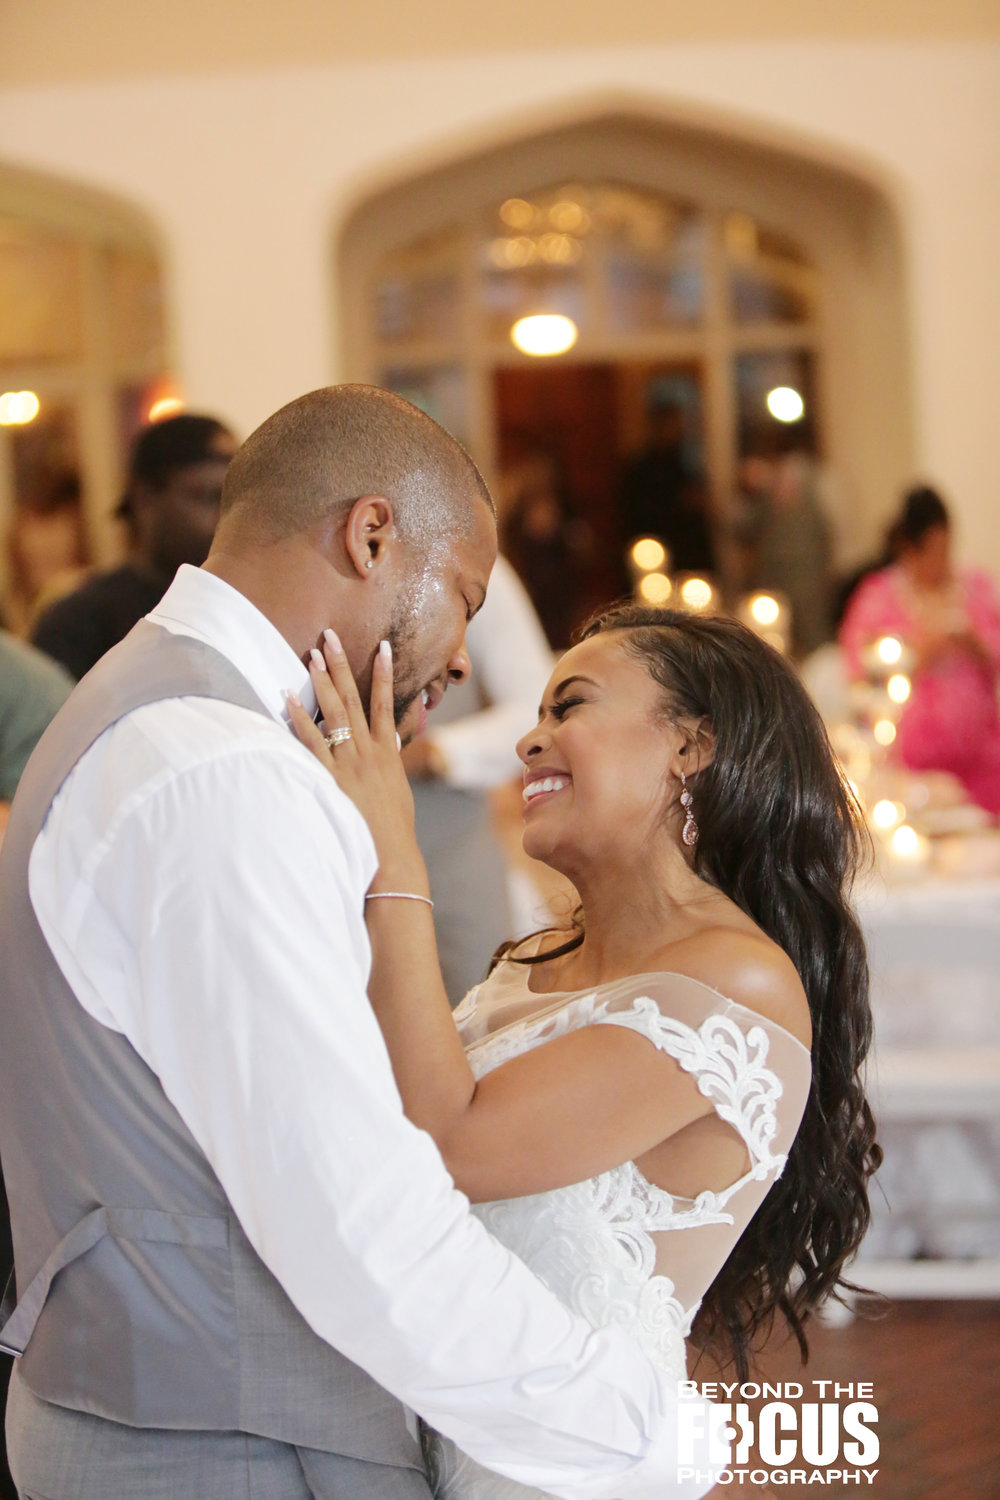 Christan_Imani_WeddingReception_W_50.jpg